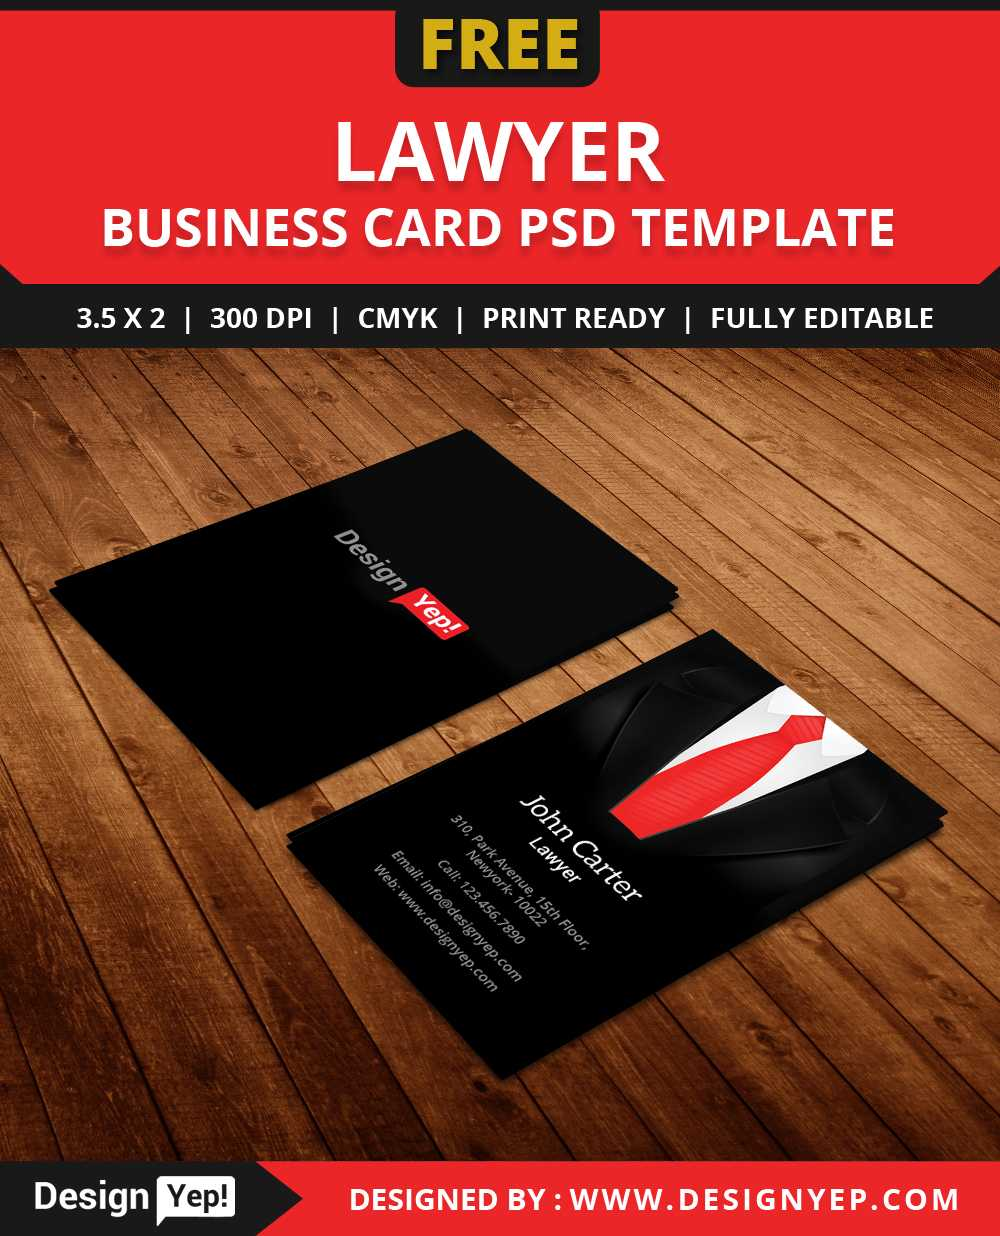 Free Lawyer Business Card Template Psd - Designyep inside Legal Business Cards Templates Free